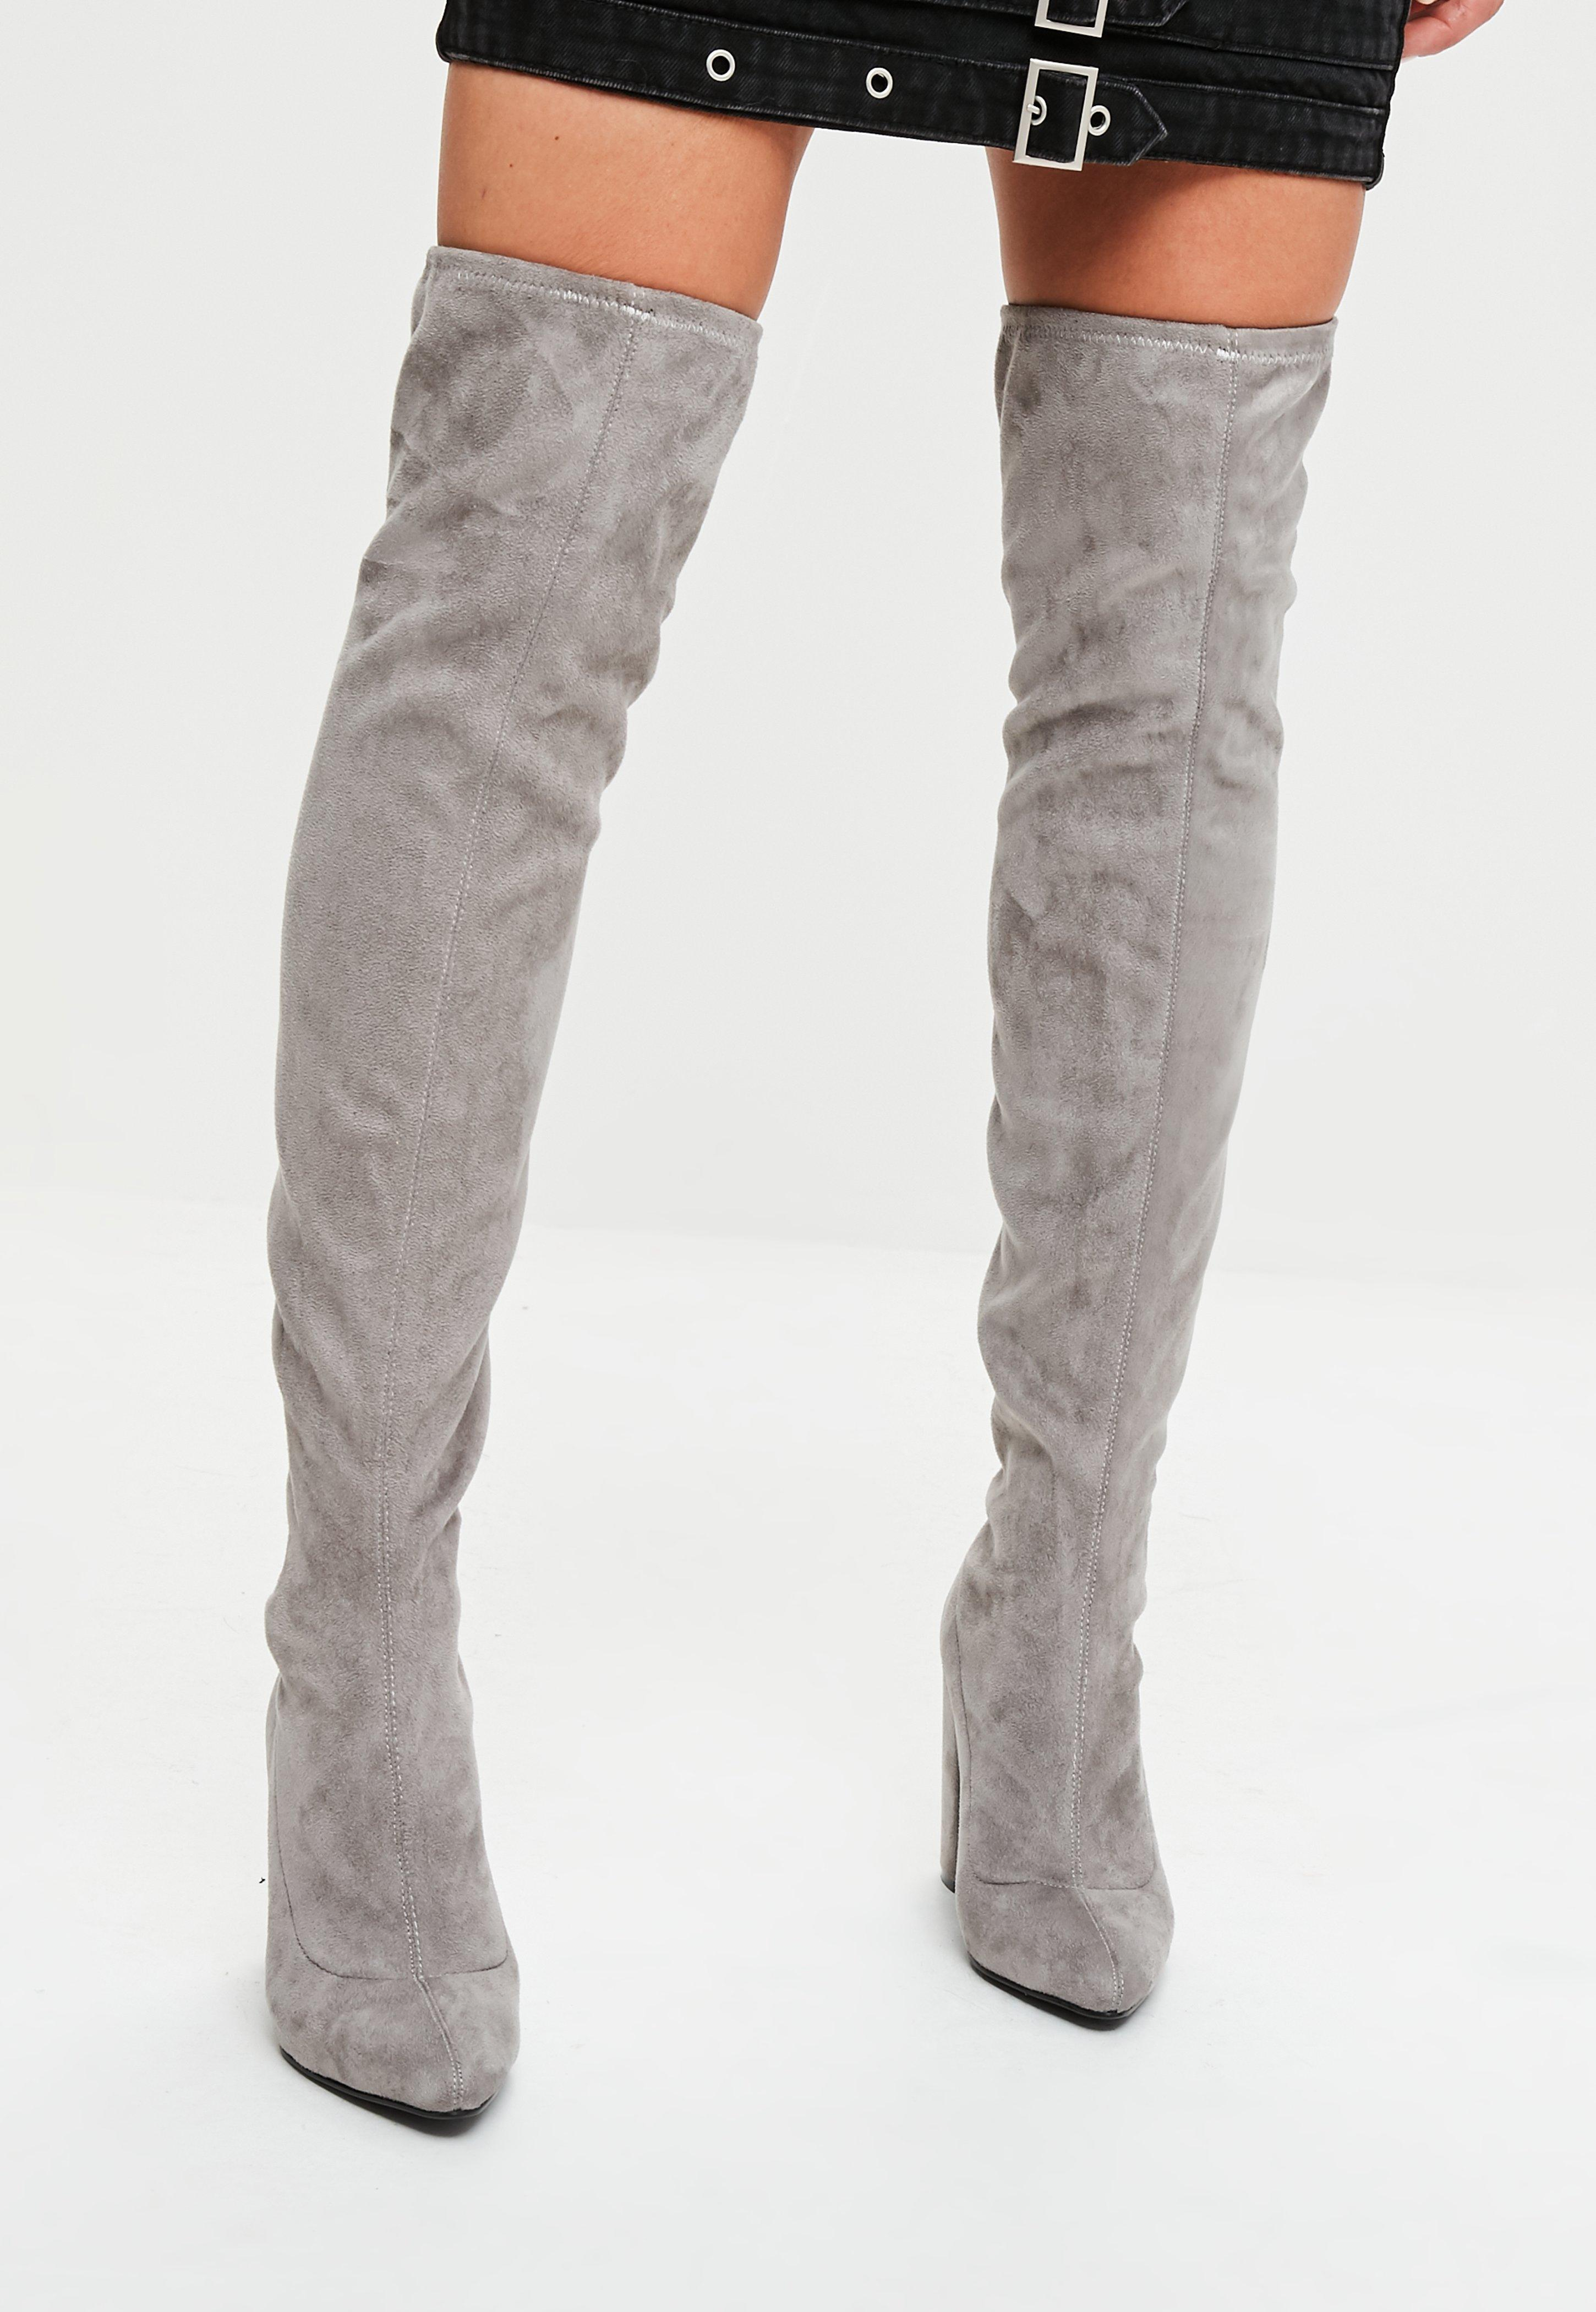 48135c46101 Missguided Grey Faux Suede Pointed Over The Knee Boots in Gray - Lyst